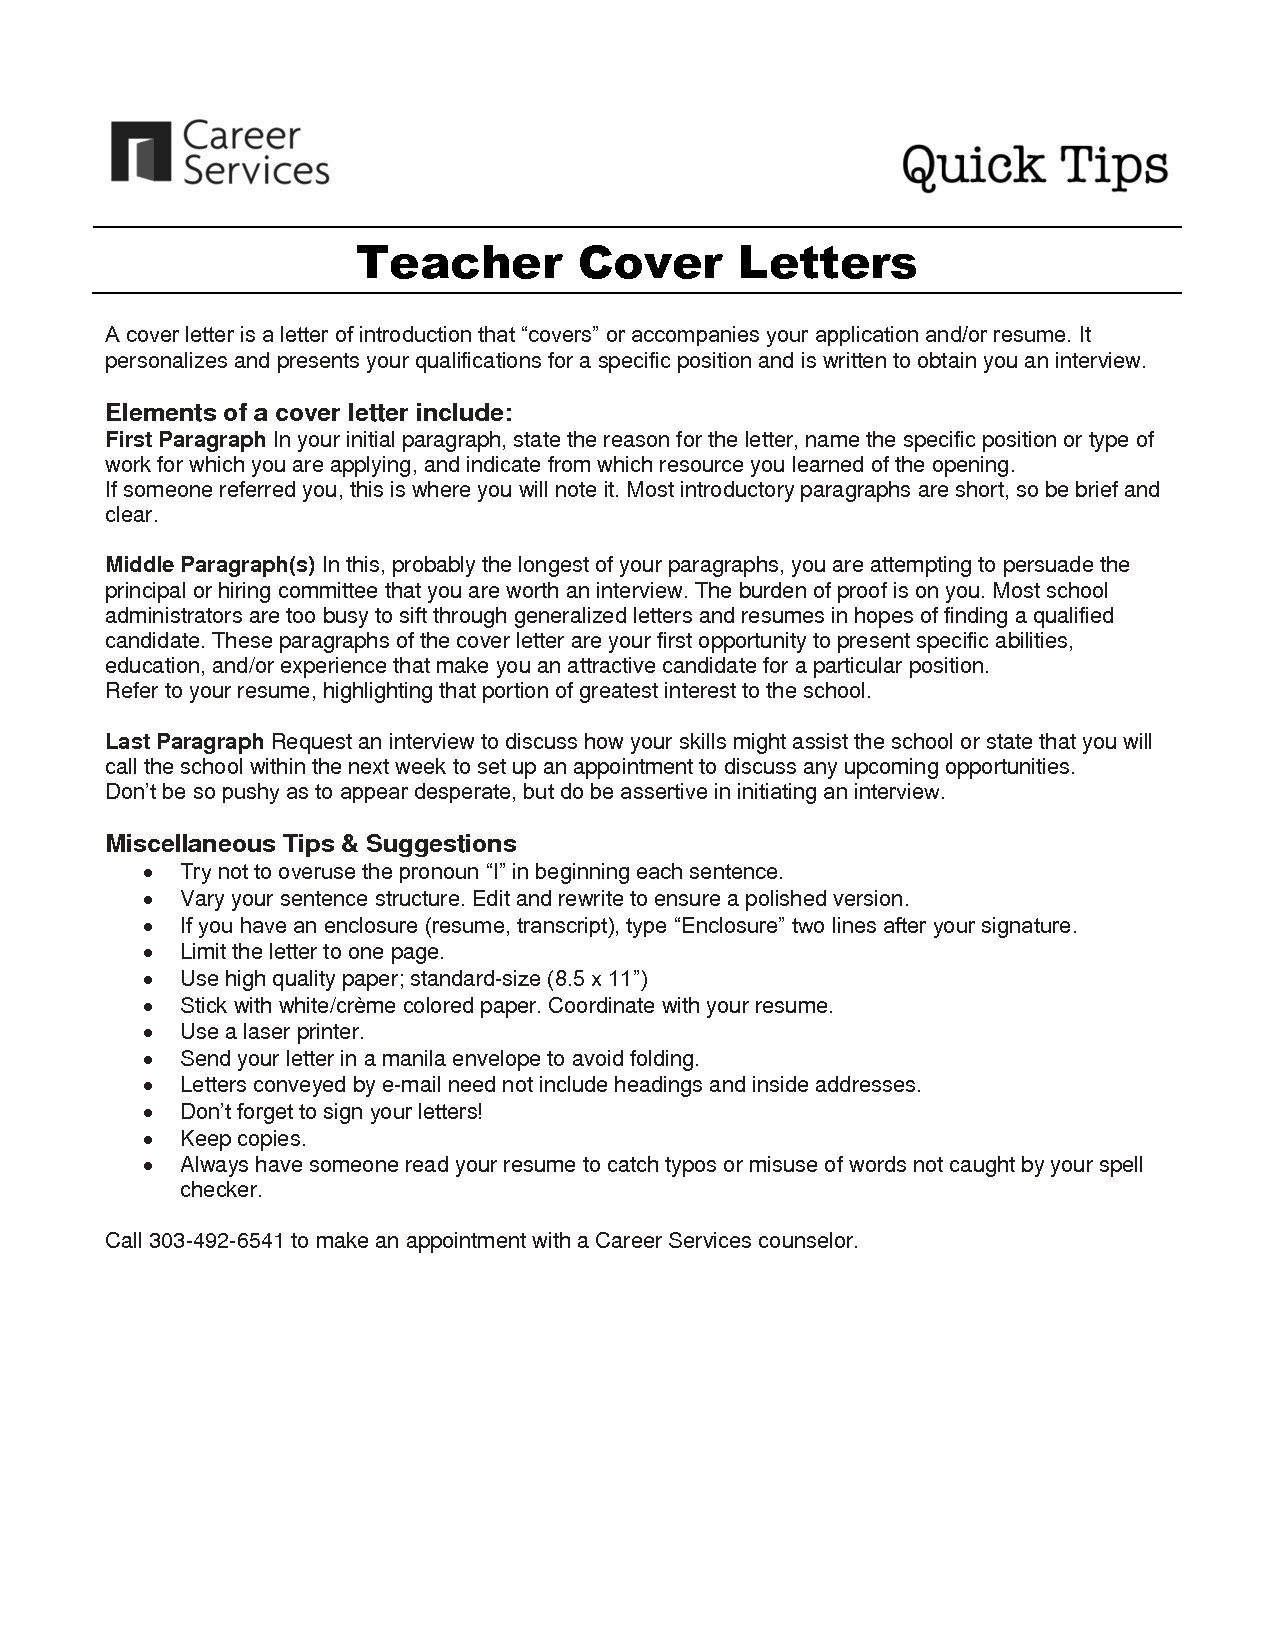 Summer Camp Counselor Resume - Financial Aid Counselor Resume Inspirationa Camp Counselor Resume